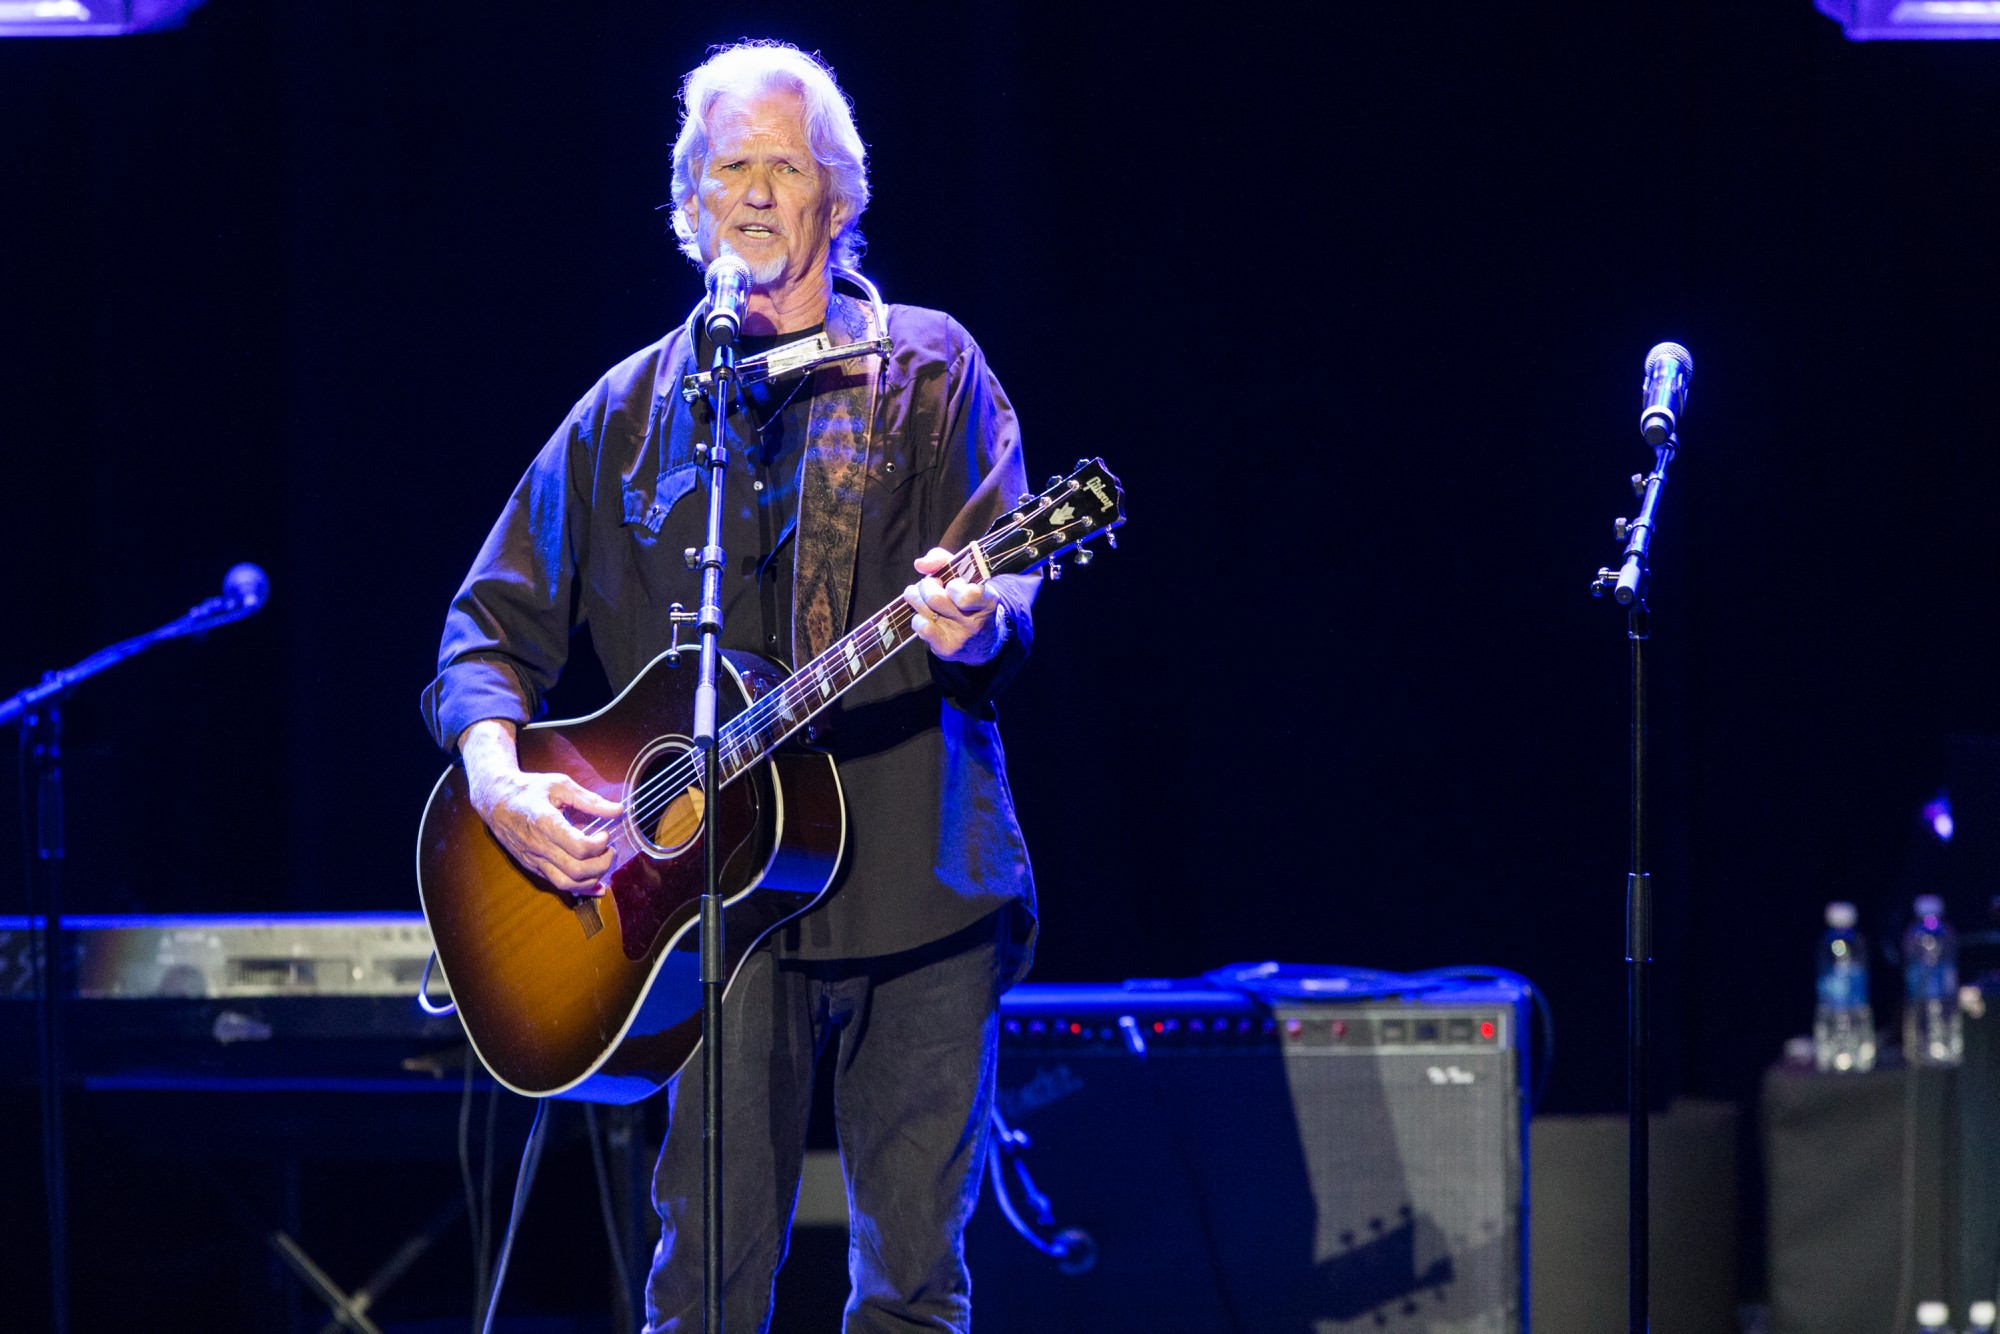 Singer Kris Kristofferson performs on stage during the 16th Annual GRAMMY Foundation Legacy Concert